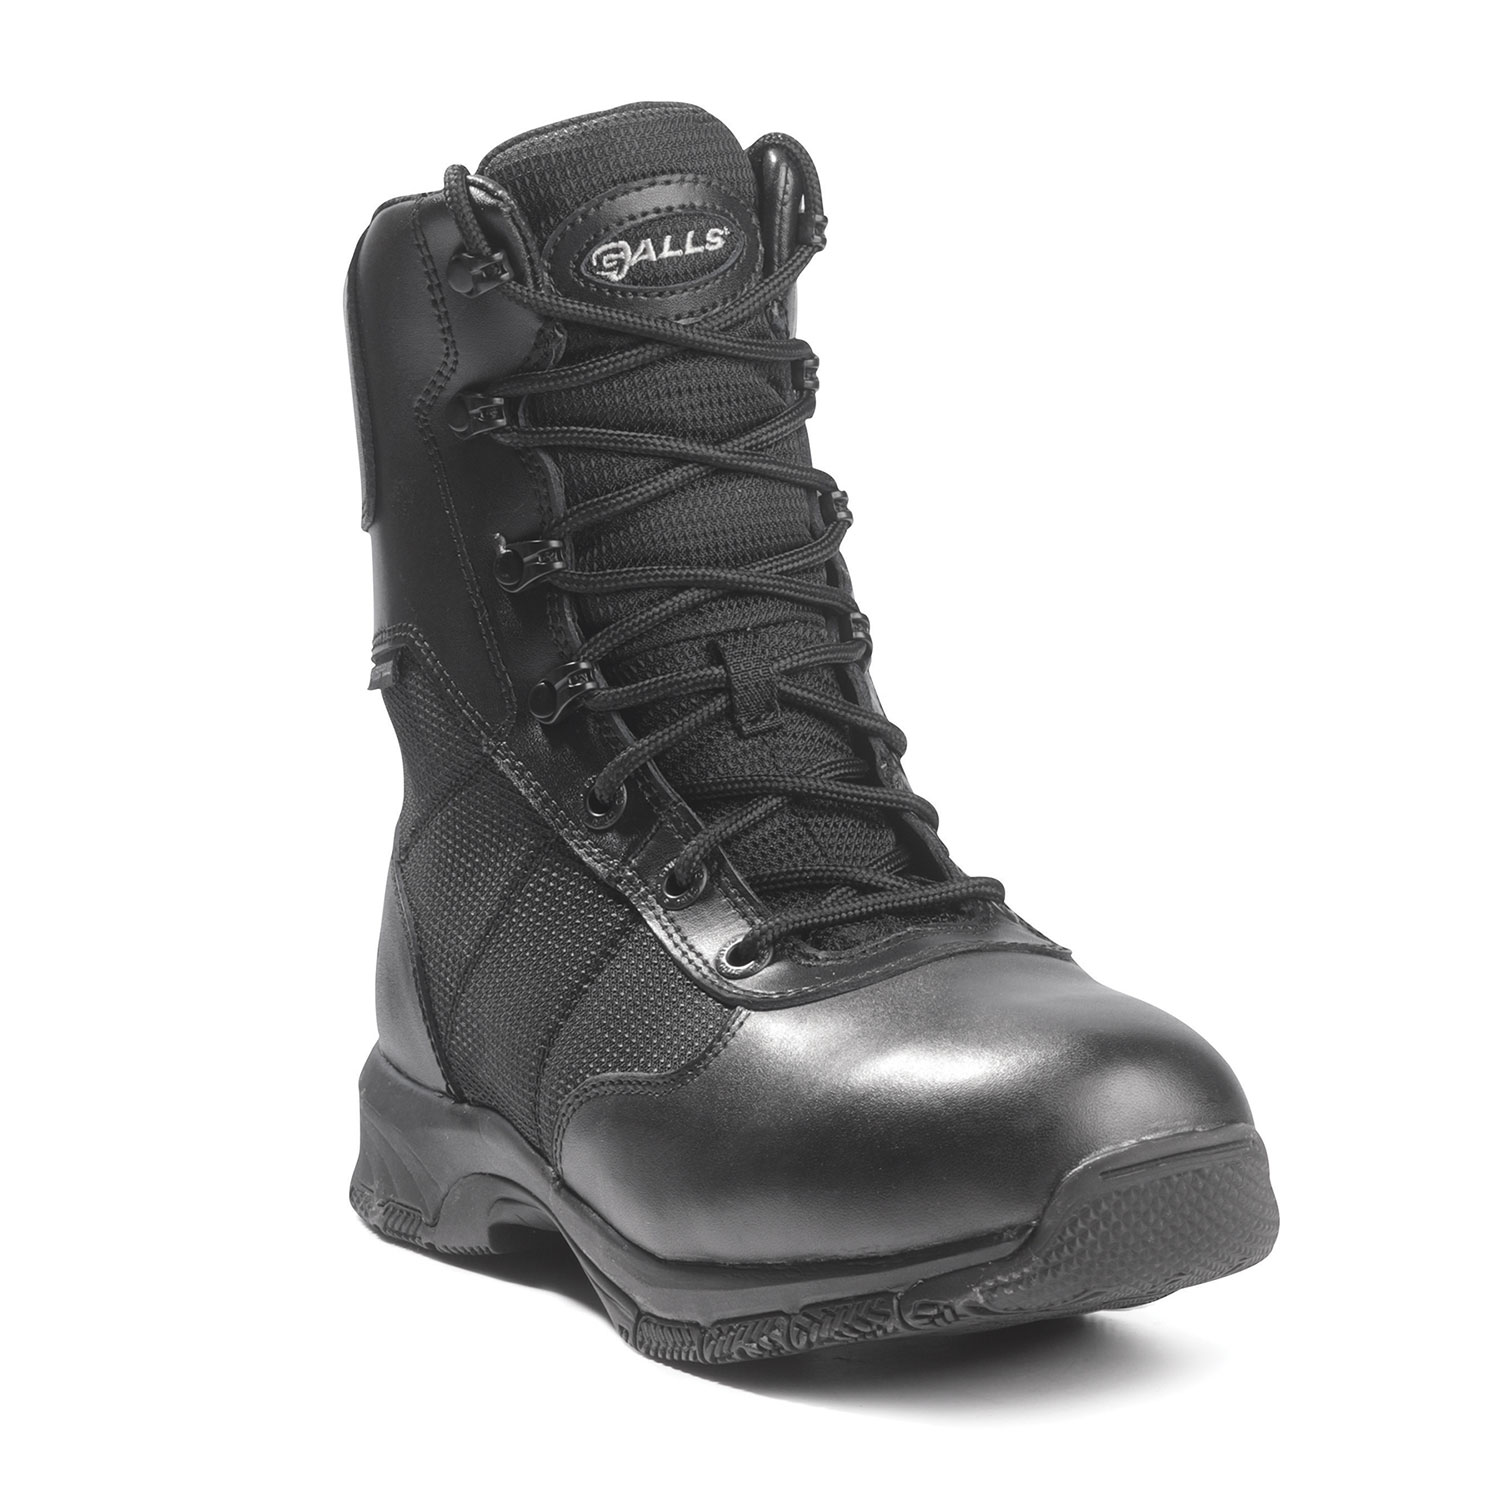 Galls G-TAC Womens Athletic 8 inch SZ WP Polishable Toe Boot